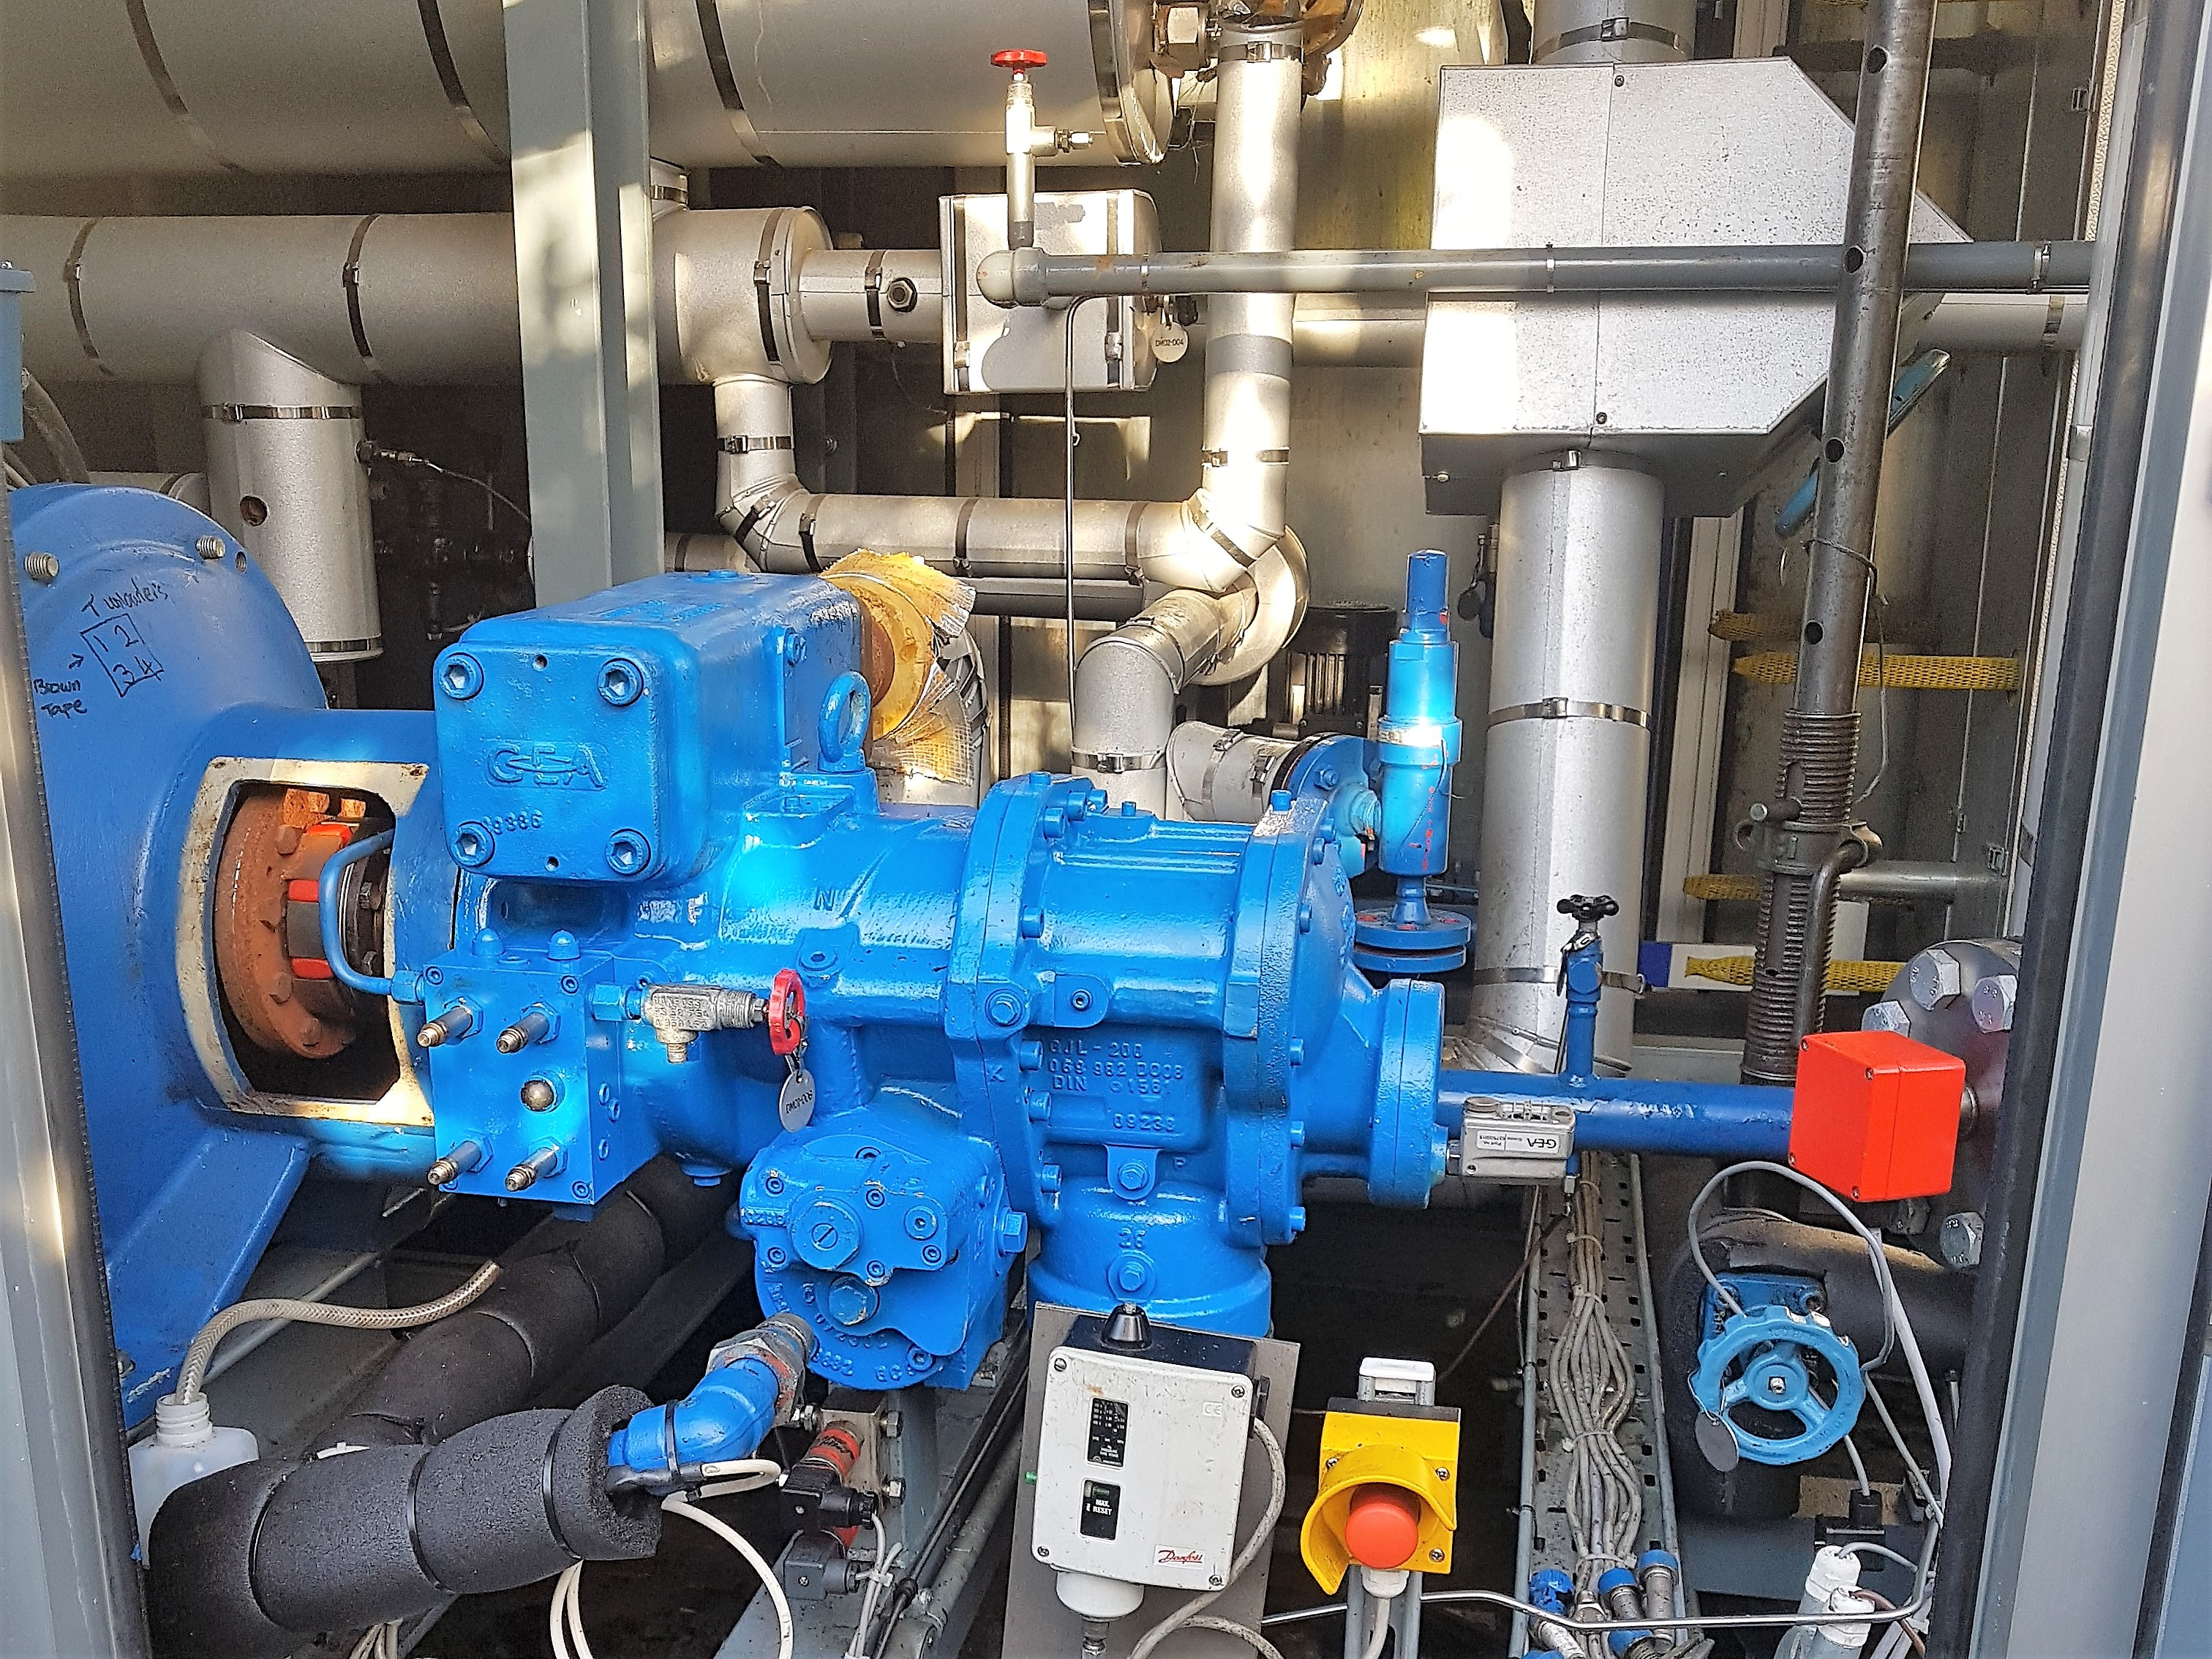 Blue Grasso industrial refrigeration compressor inside chiller being prepared to be lifted out